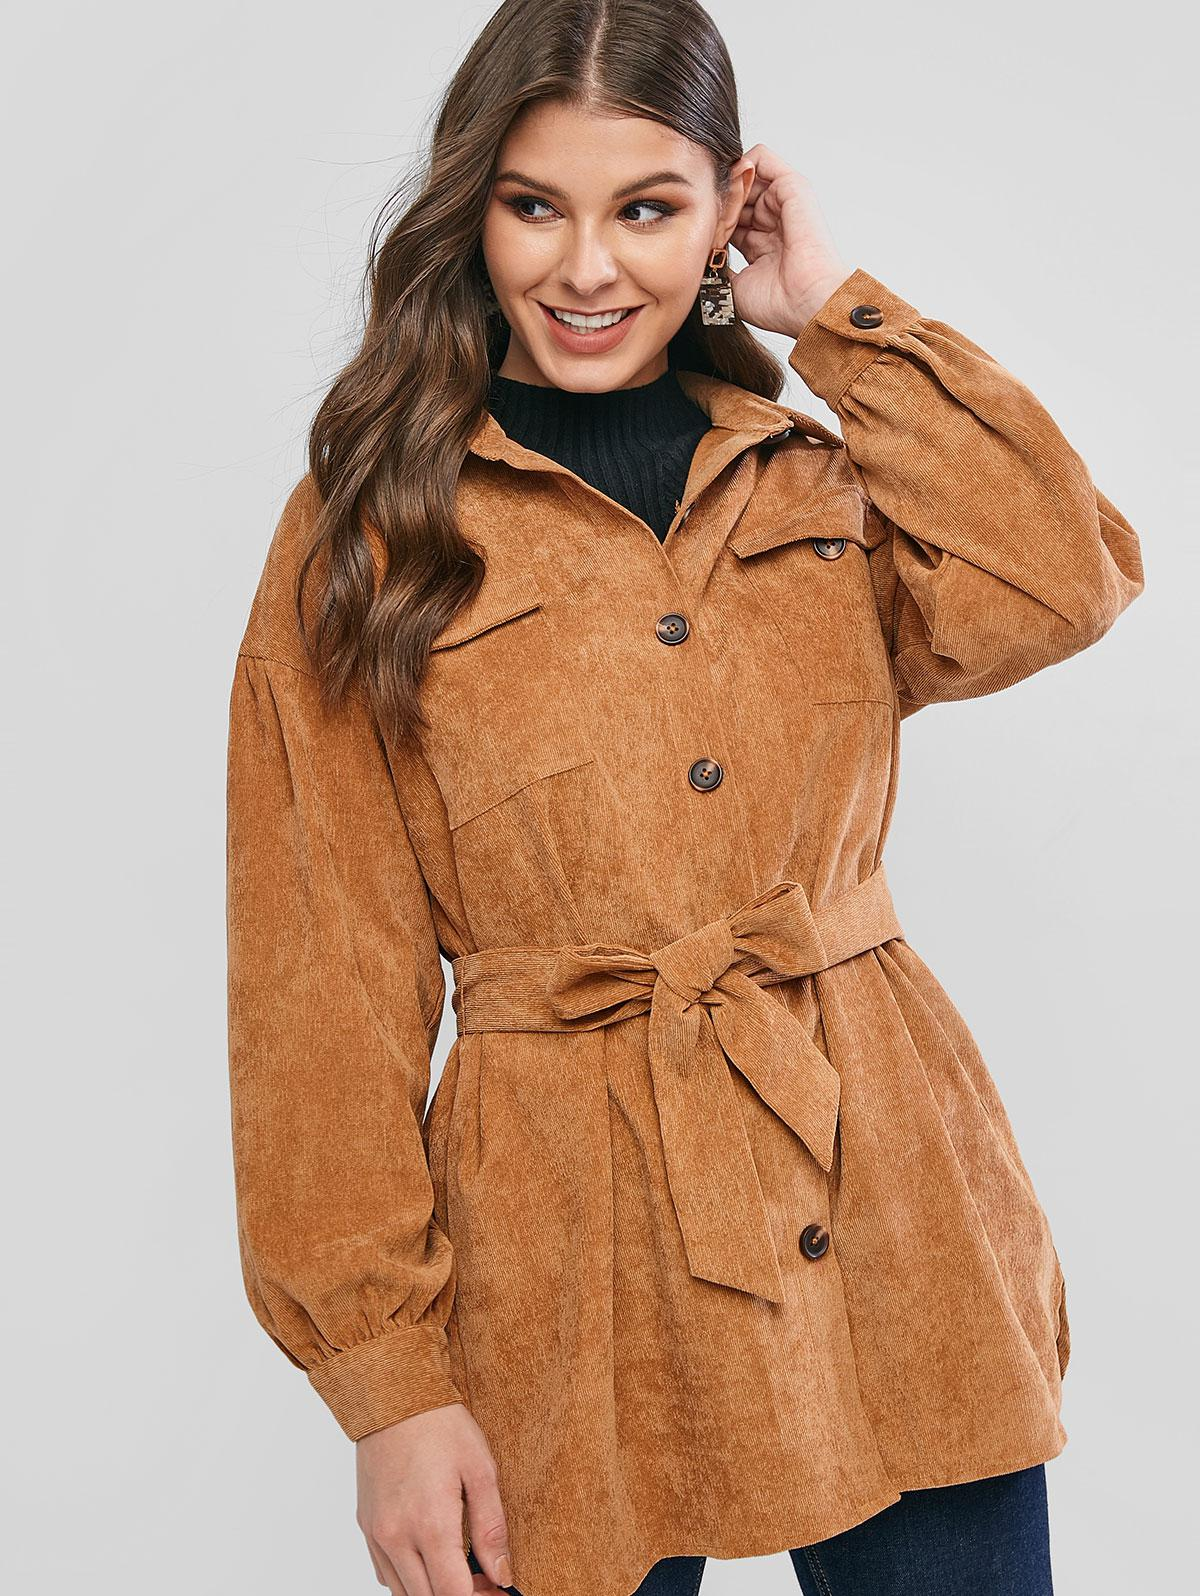 ZAFUL Buttoned Pockets Solid Belted Corduroy Coat